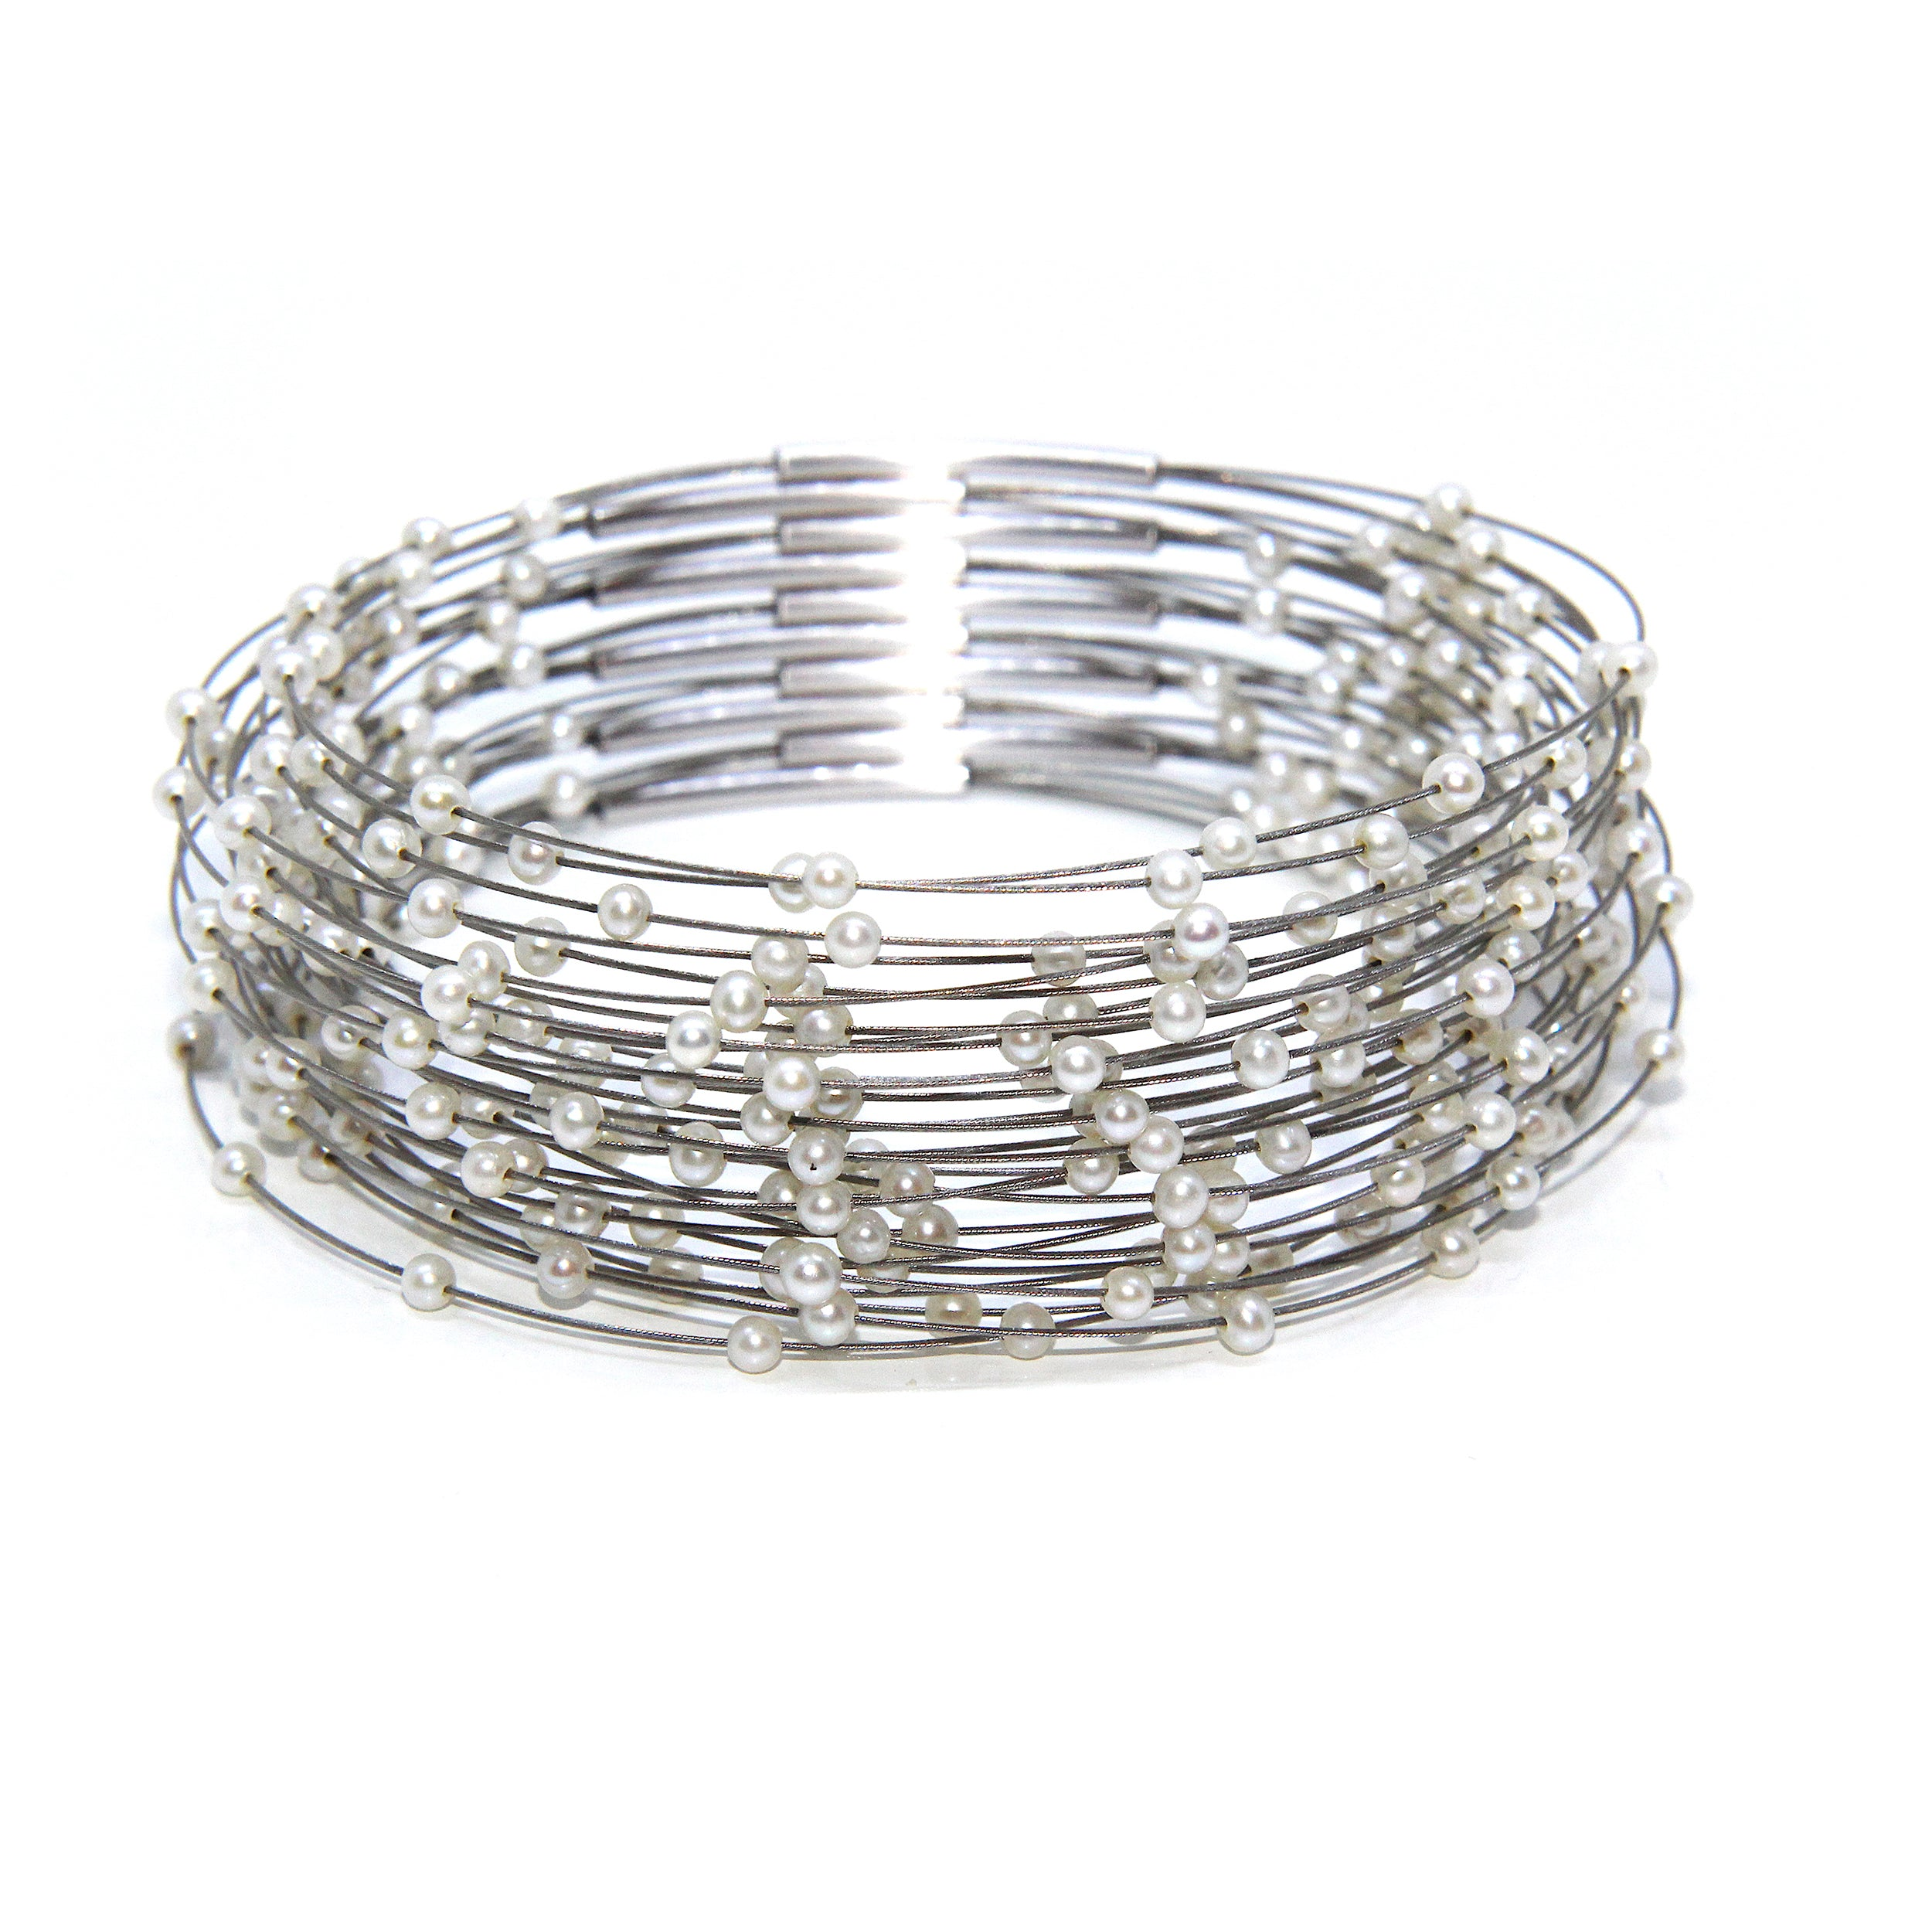 products pure made design sterling wholesale new in suppliers china bracelet silver manufacturers search hot com